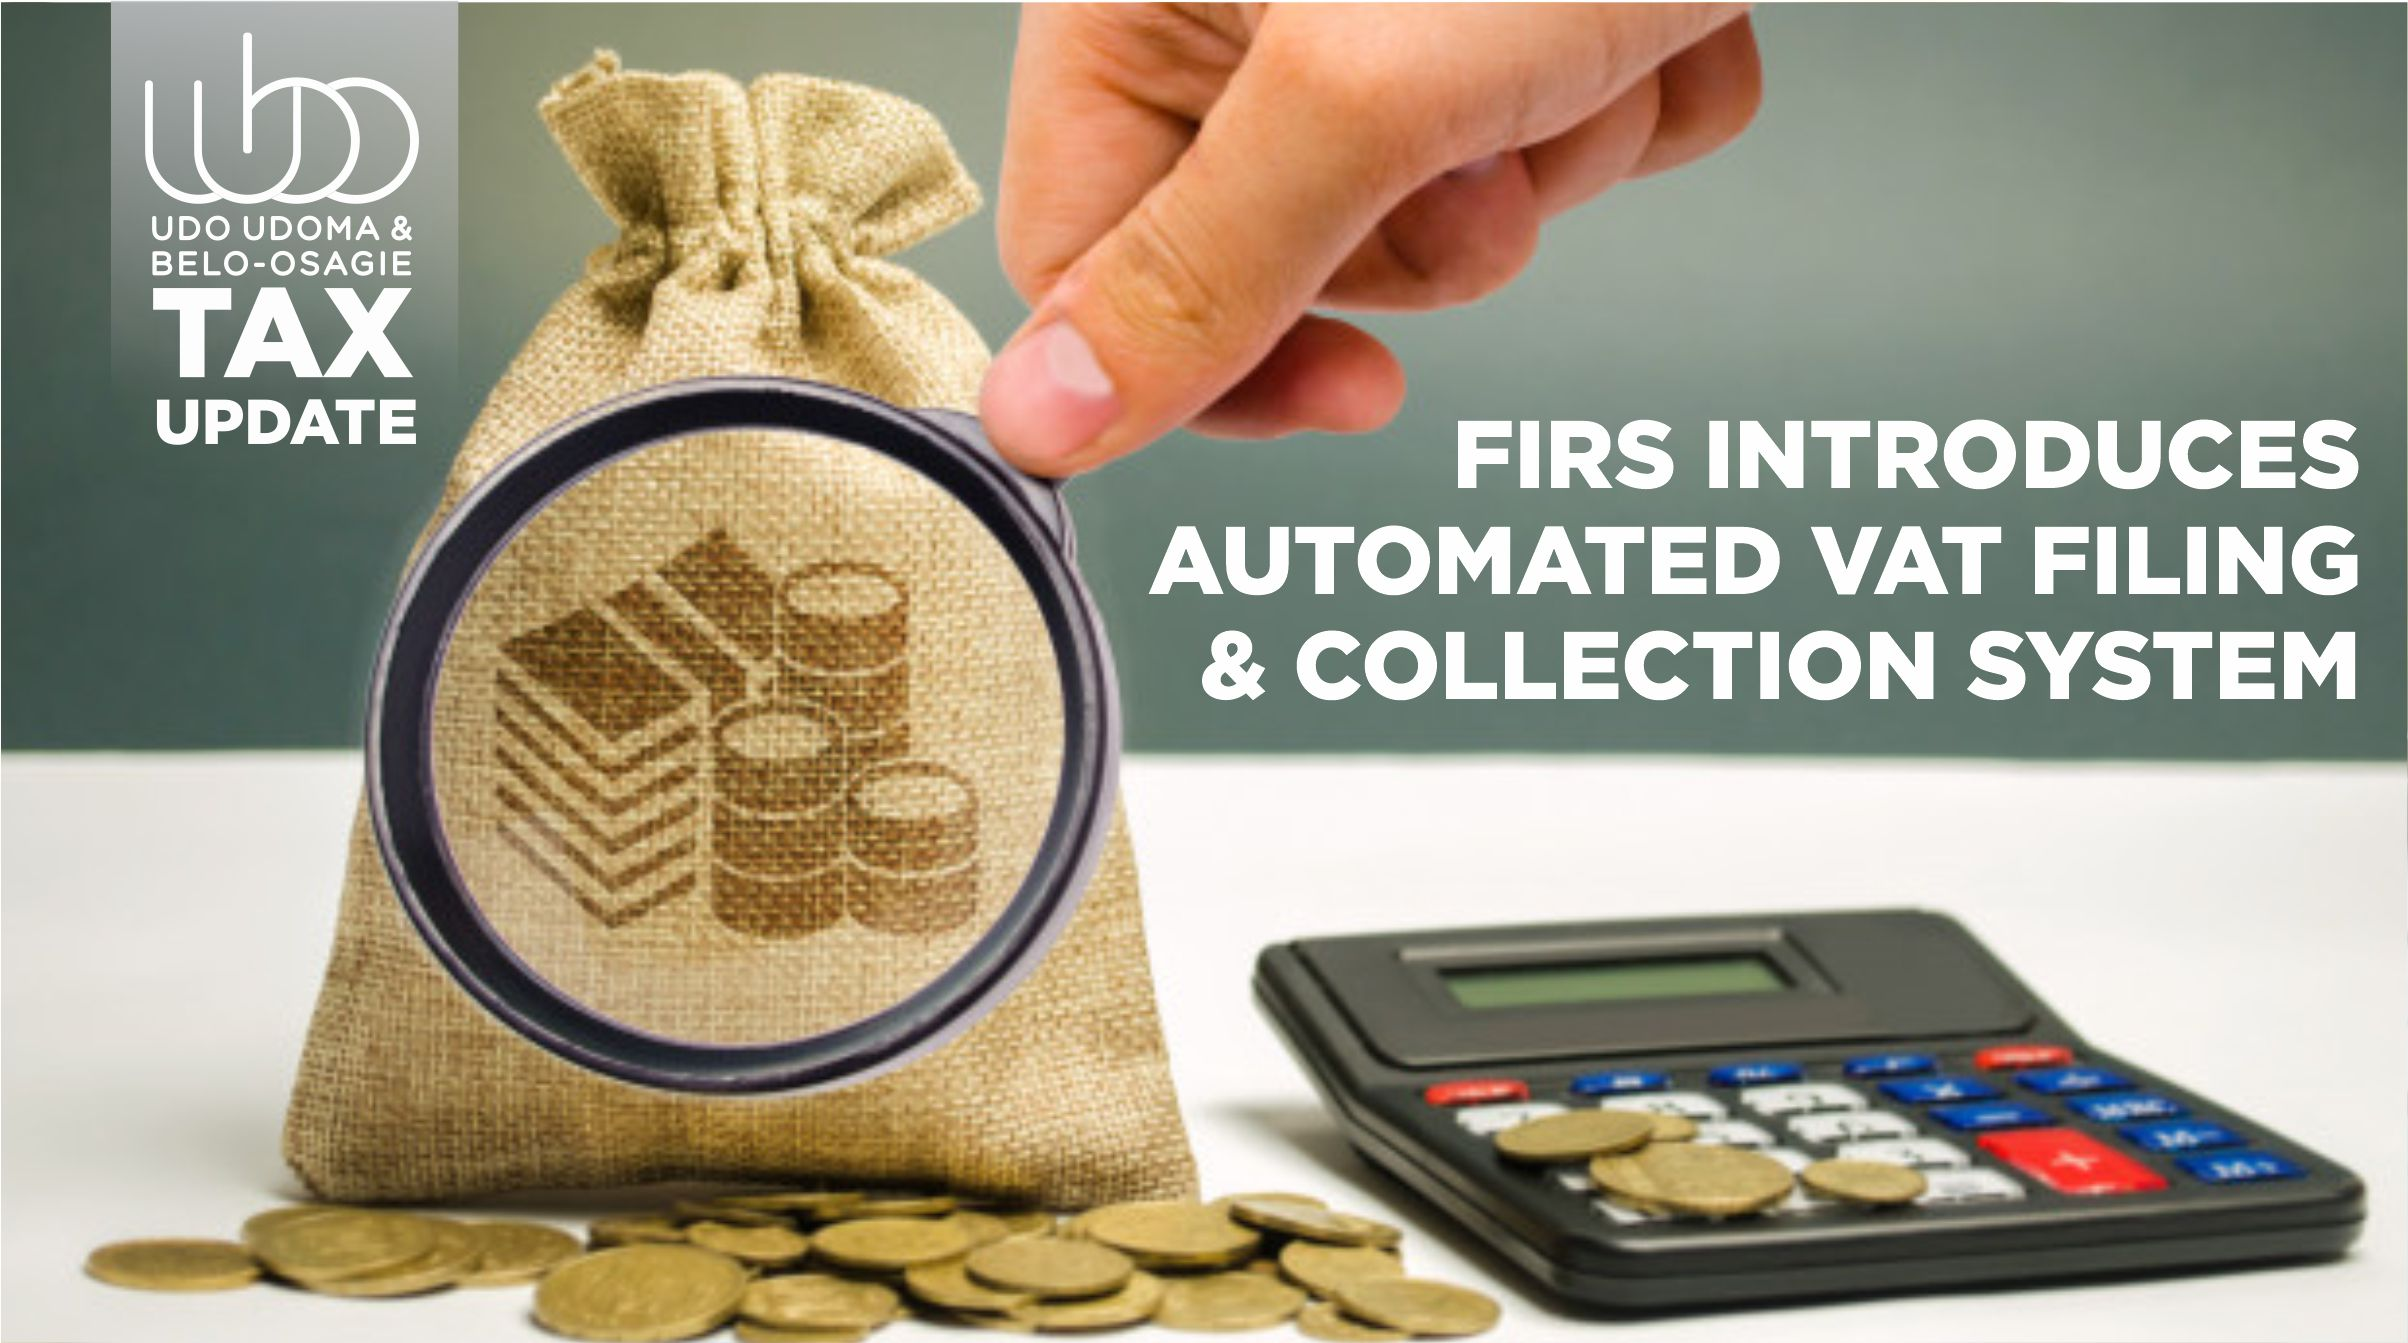 FIRS INTRODUCES AUTOMATED VAT FILING & COLLECTION SYSTEM